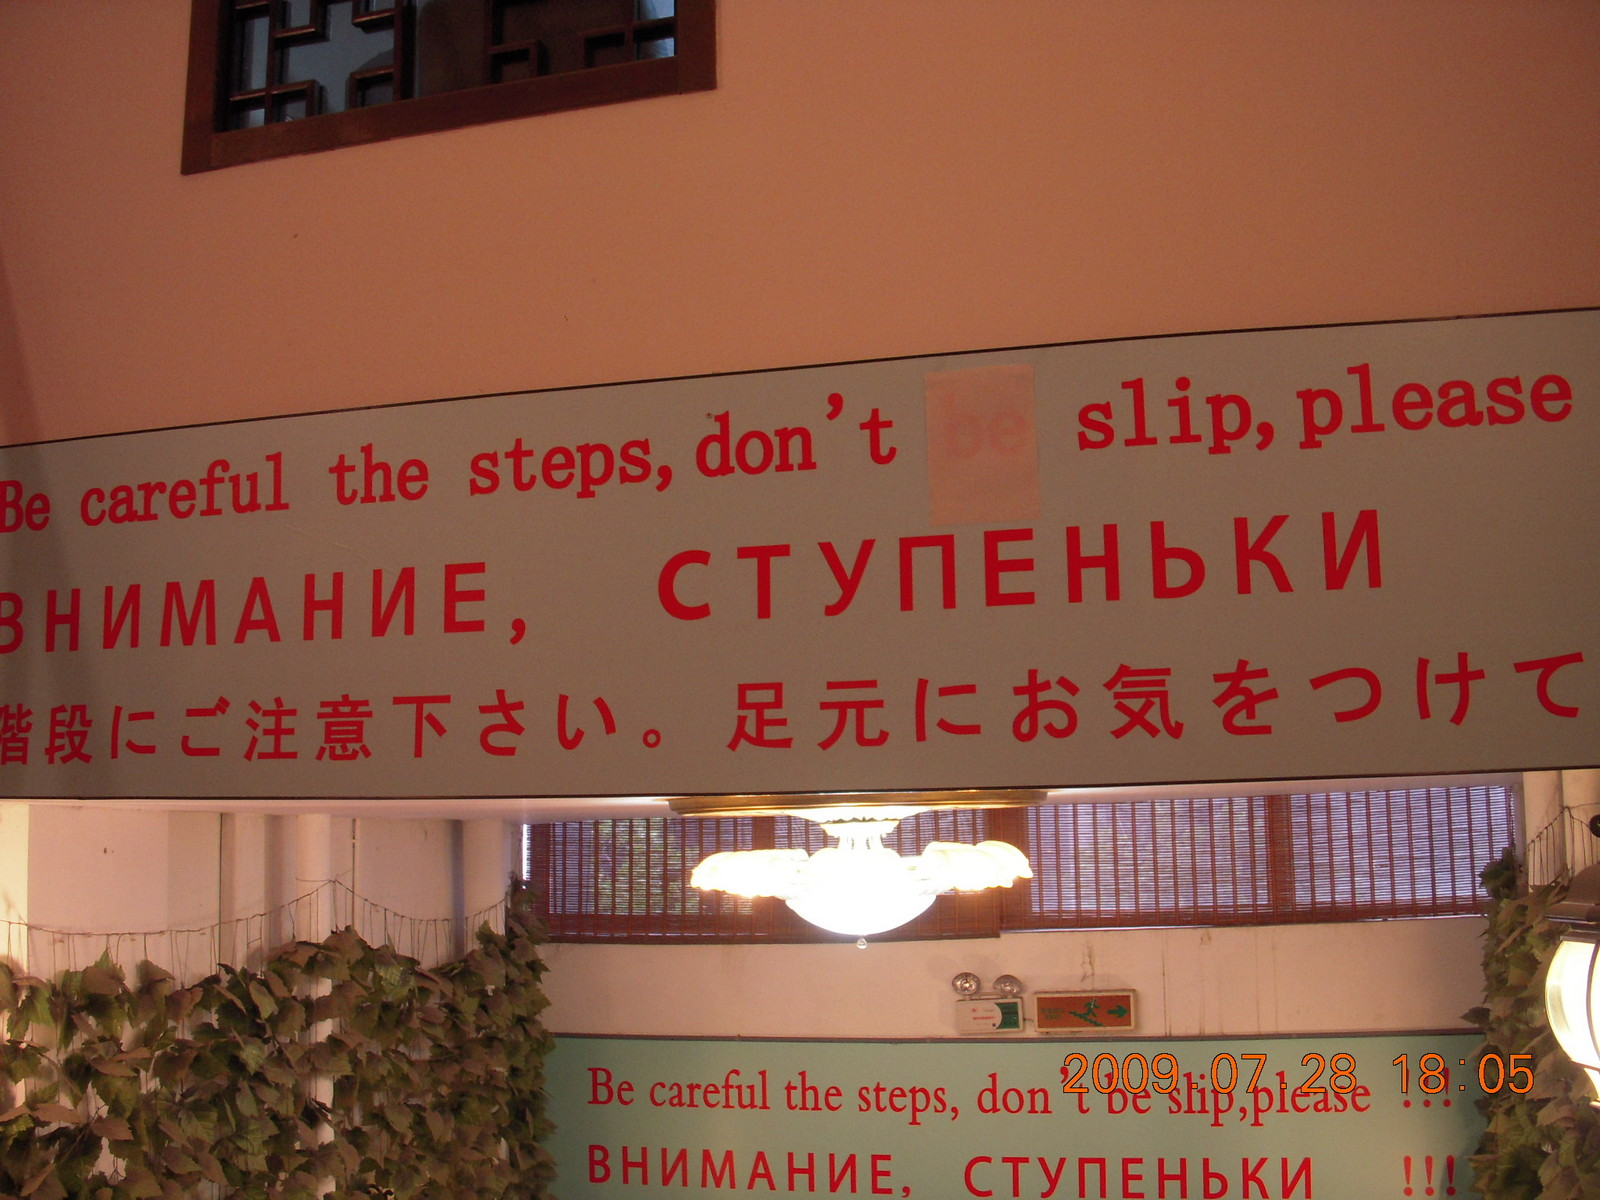 China eclipse - Beijing tour - tea tasting sign including Russian